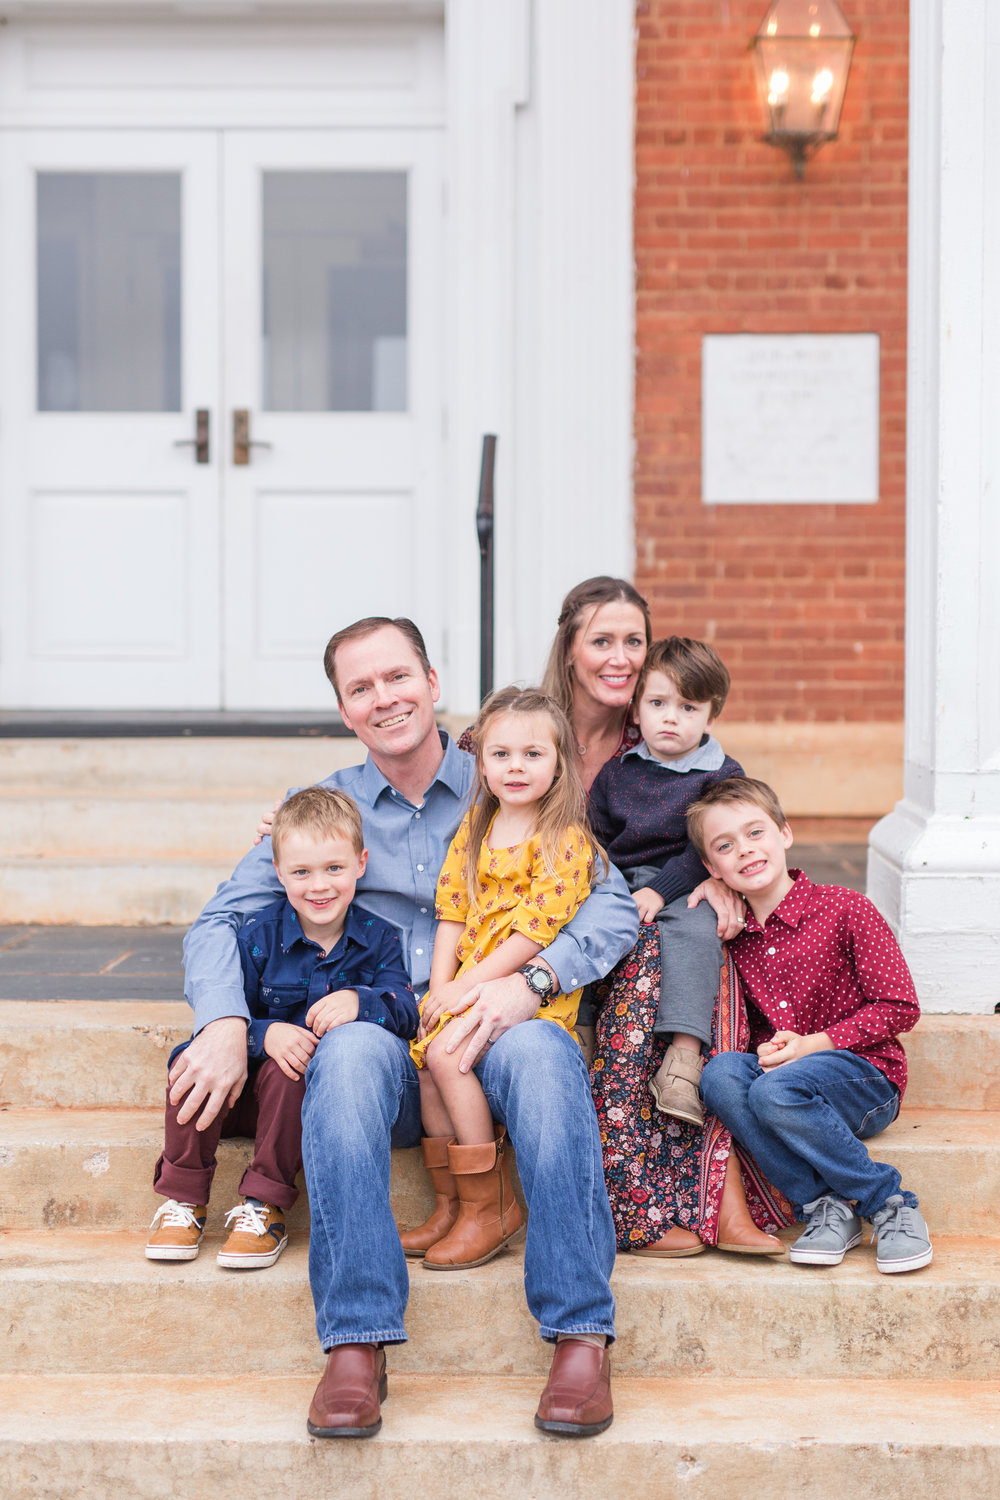 Lynchburg Family Photographer || Charlottesville and Lynchburg Wedding and Portrait Photographer || Fall Family Photos in Lynchburg